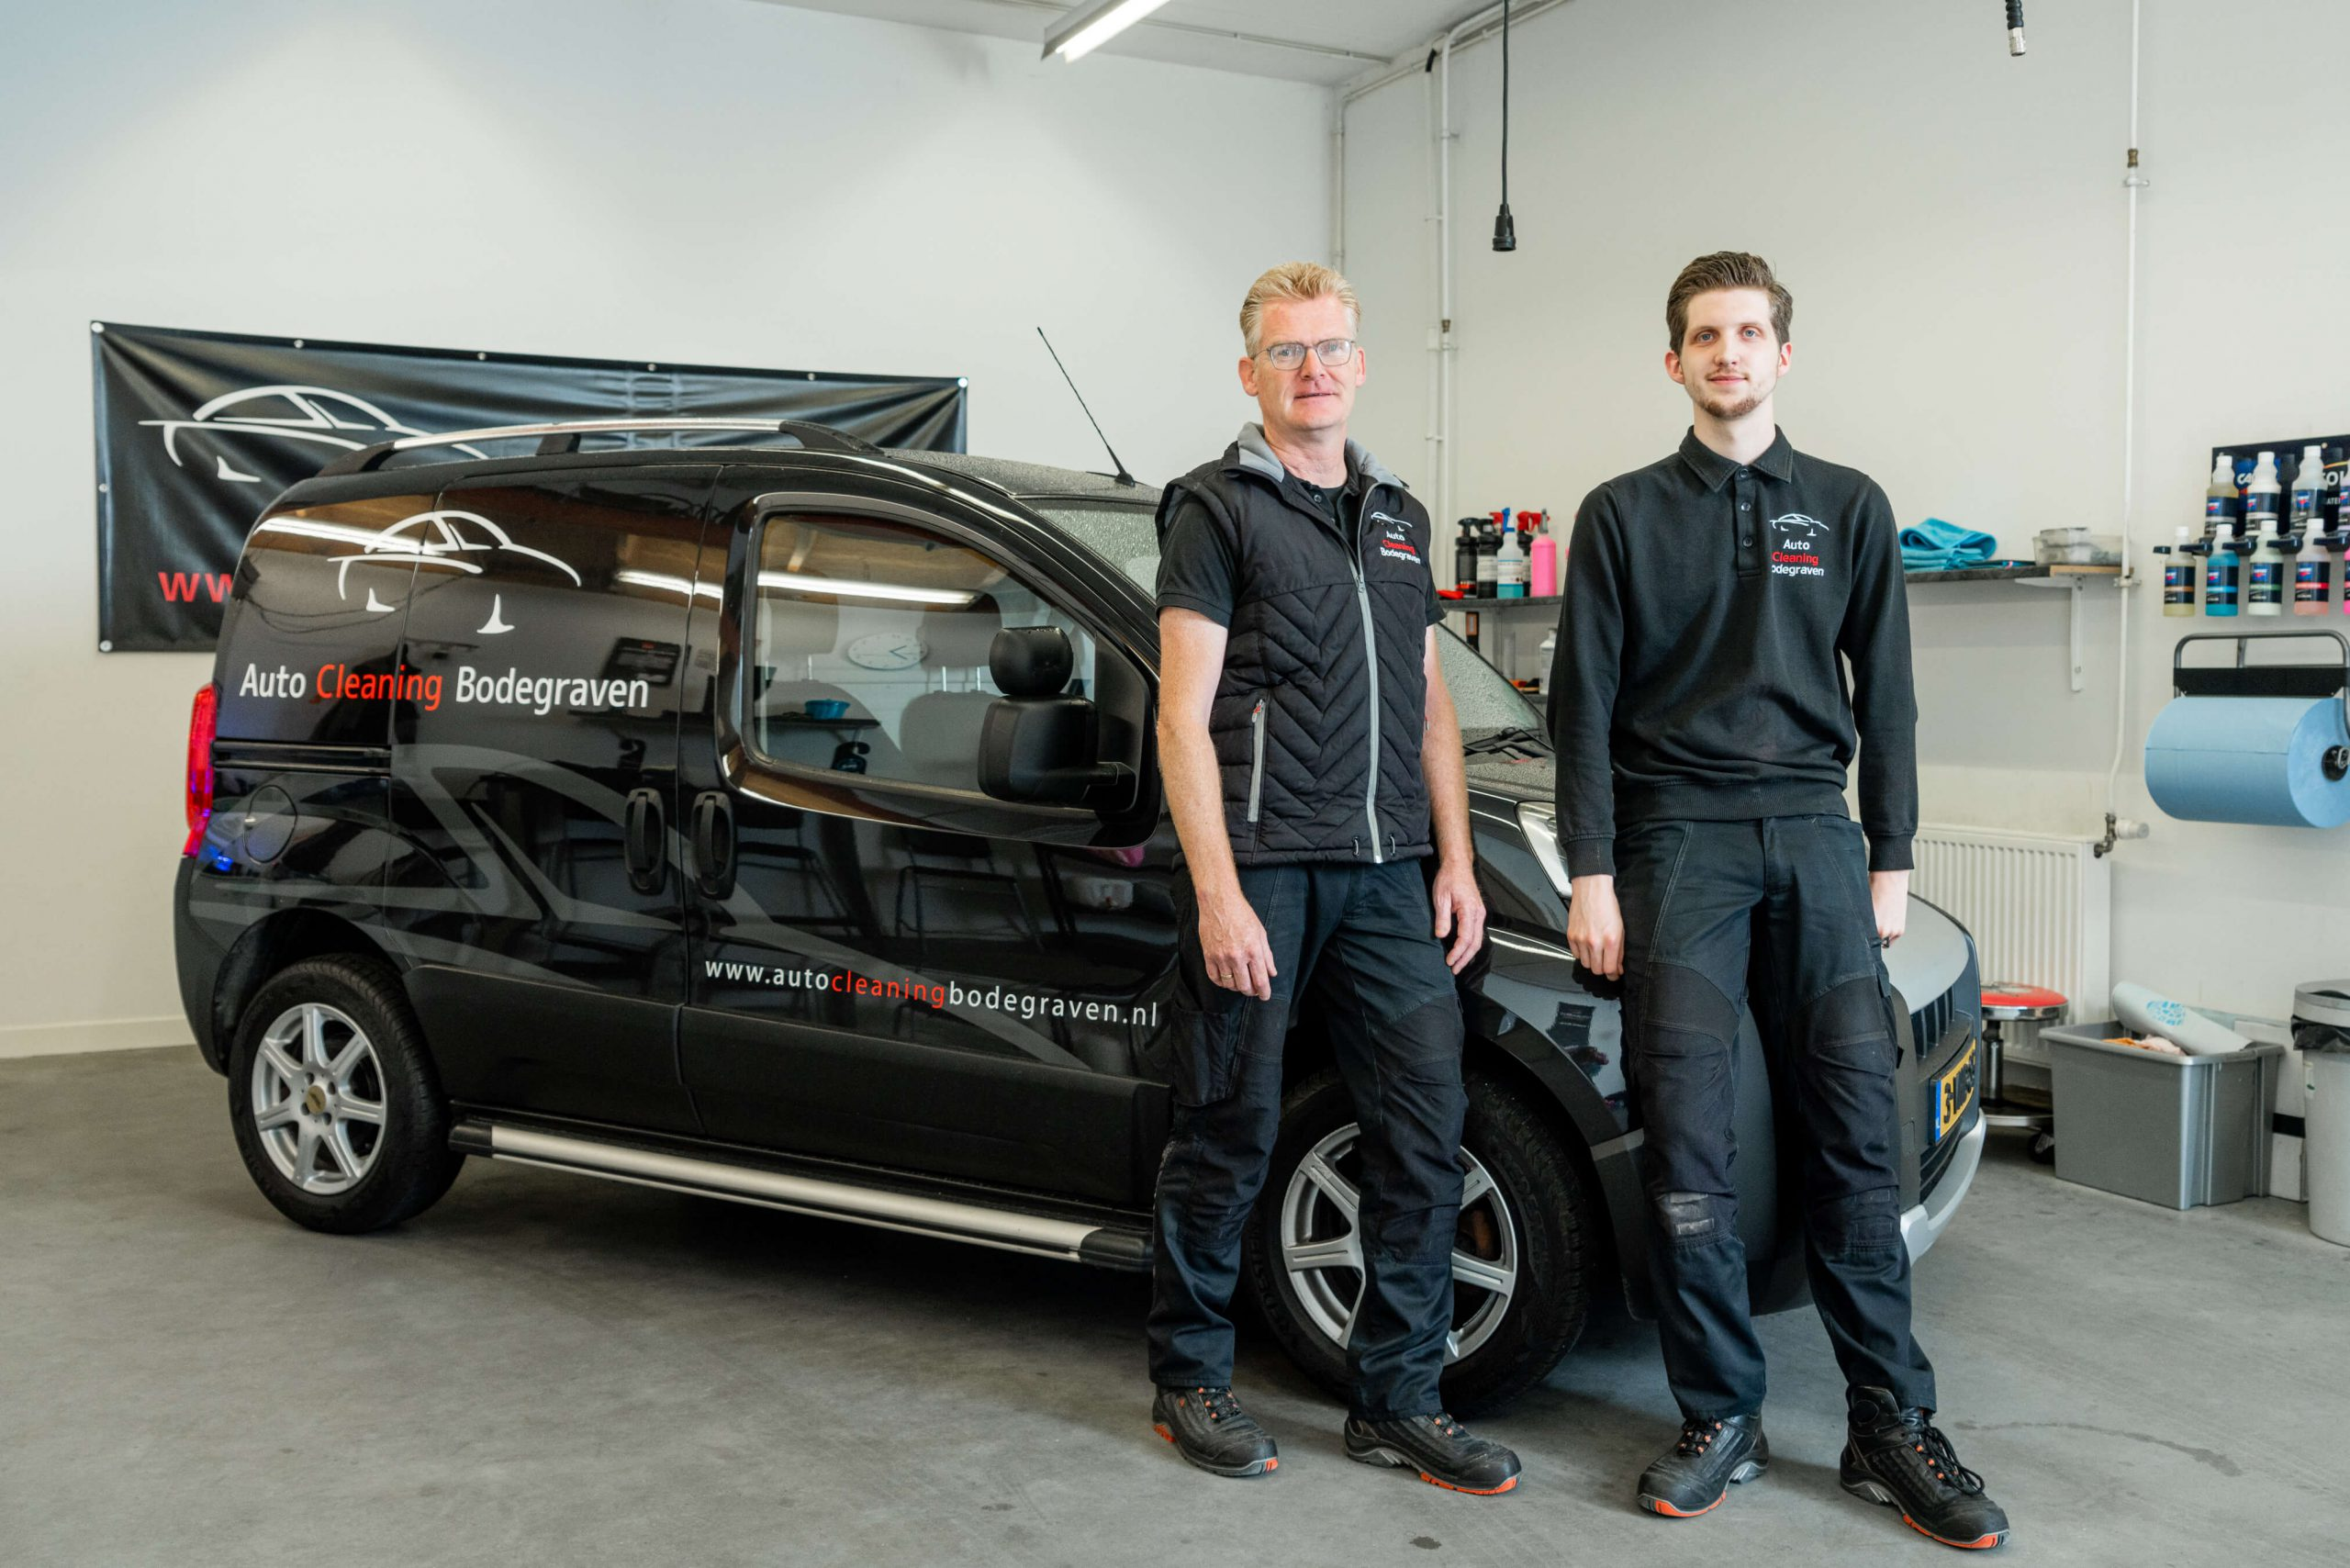 Auto Cleaning Bodegraven